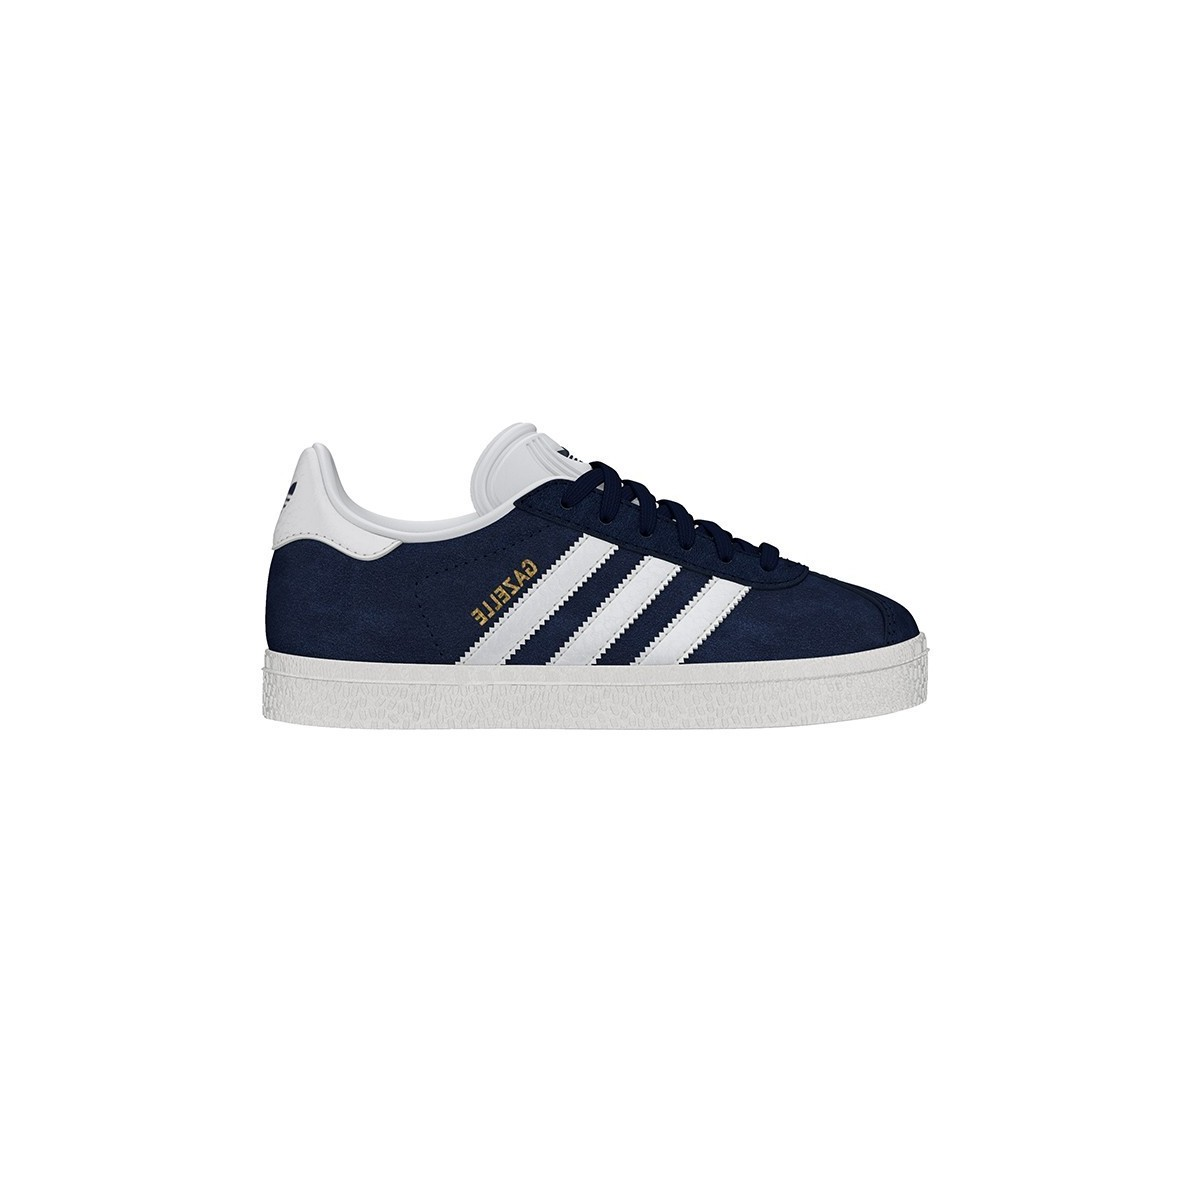 Baskets Gazelle Lacets Navy